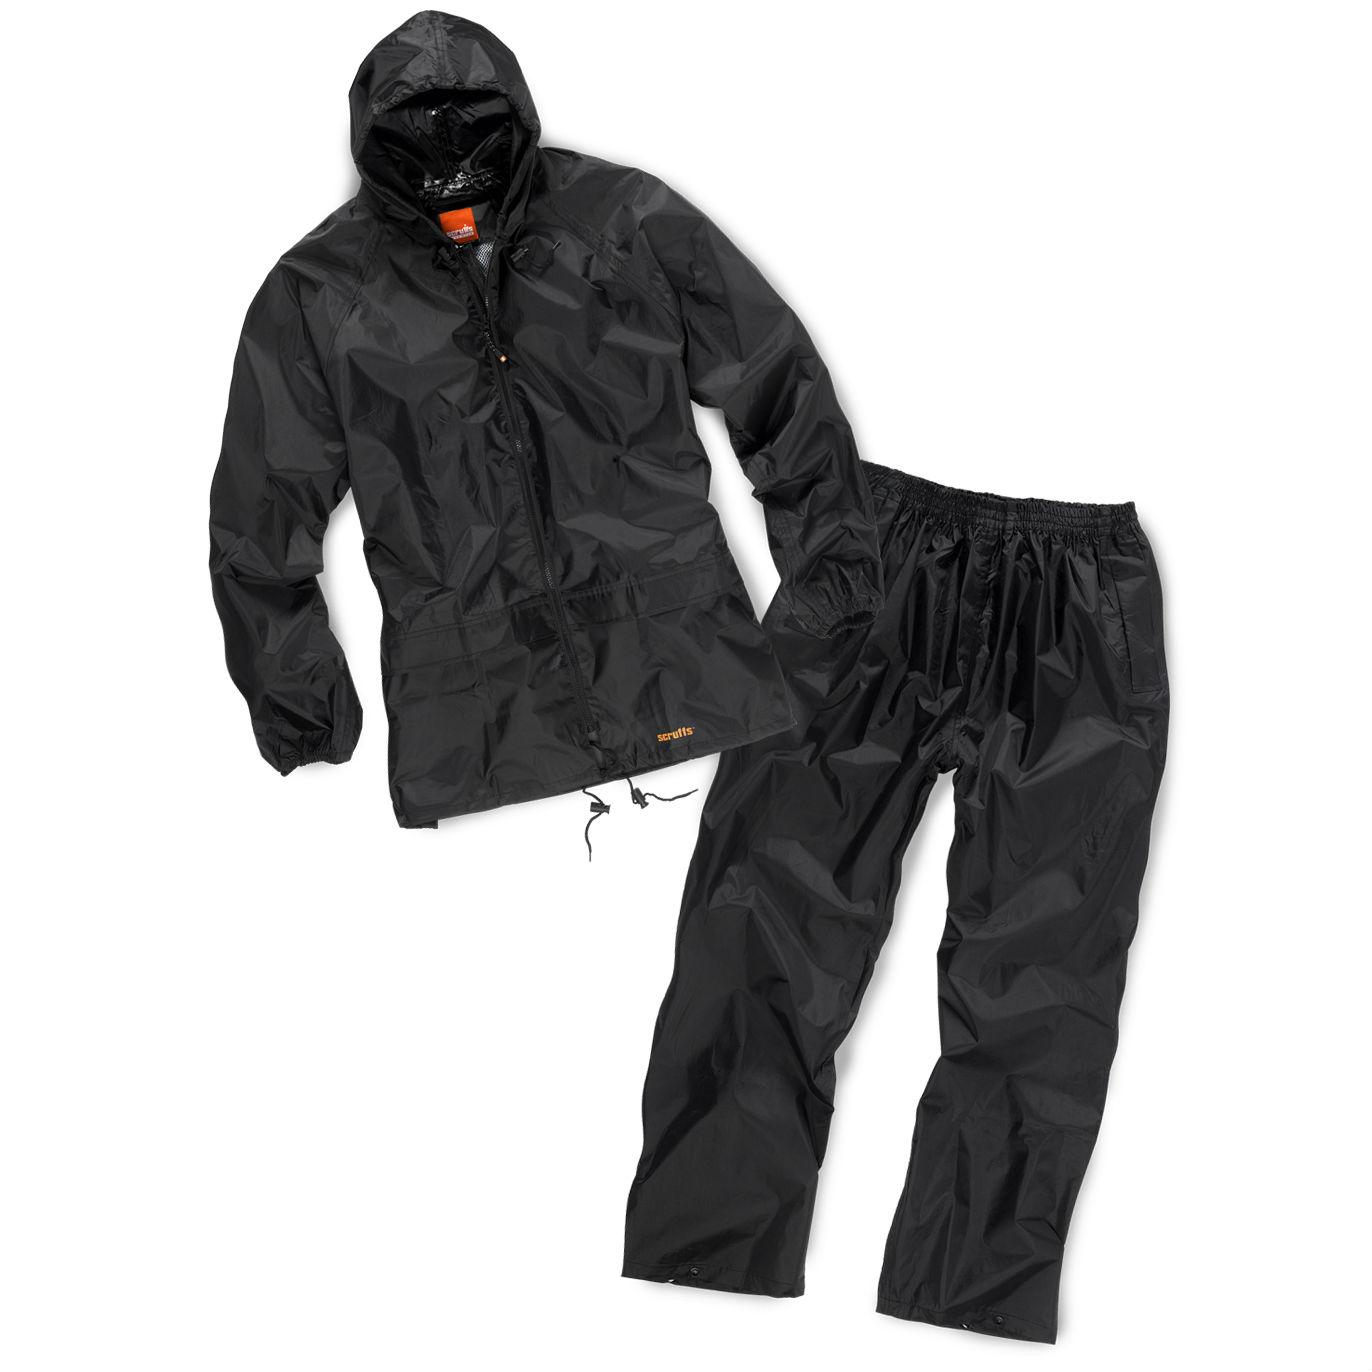 Waterproof Rainsuit